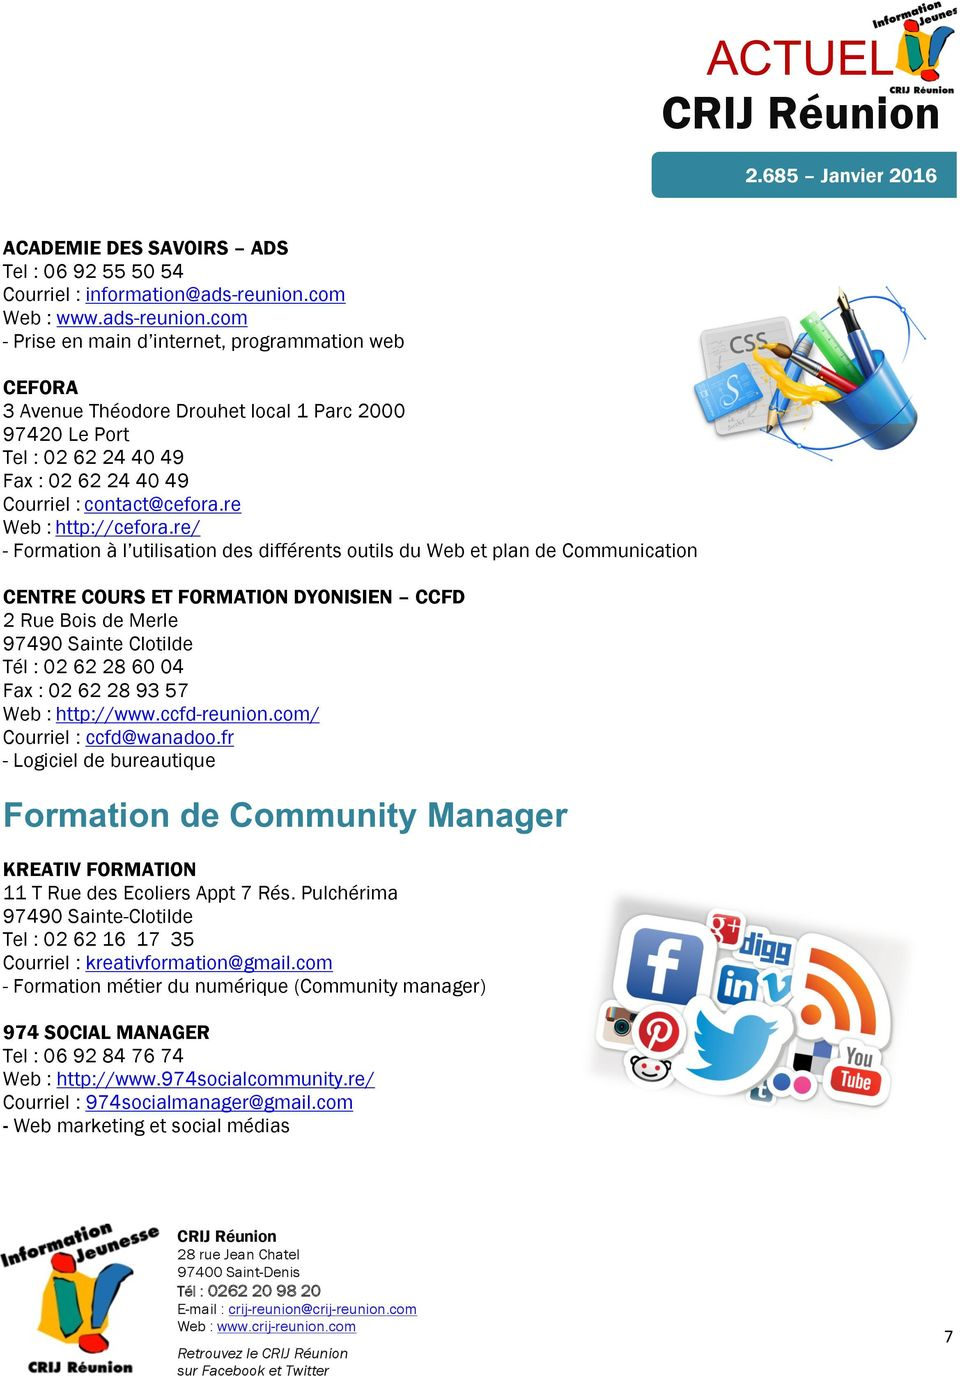 com - Prise en main d internet, programmation web CEFORA 3 Avenue Théodore Drouhet local 1 Parc 2000 97420 Le Port Tel : 02 62 24 40 49 Fax : 02 62 24 40 49 Courriel : contact@cefora.